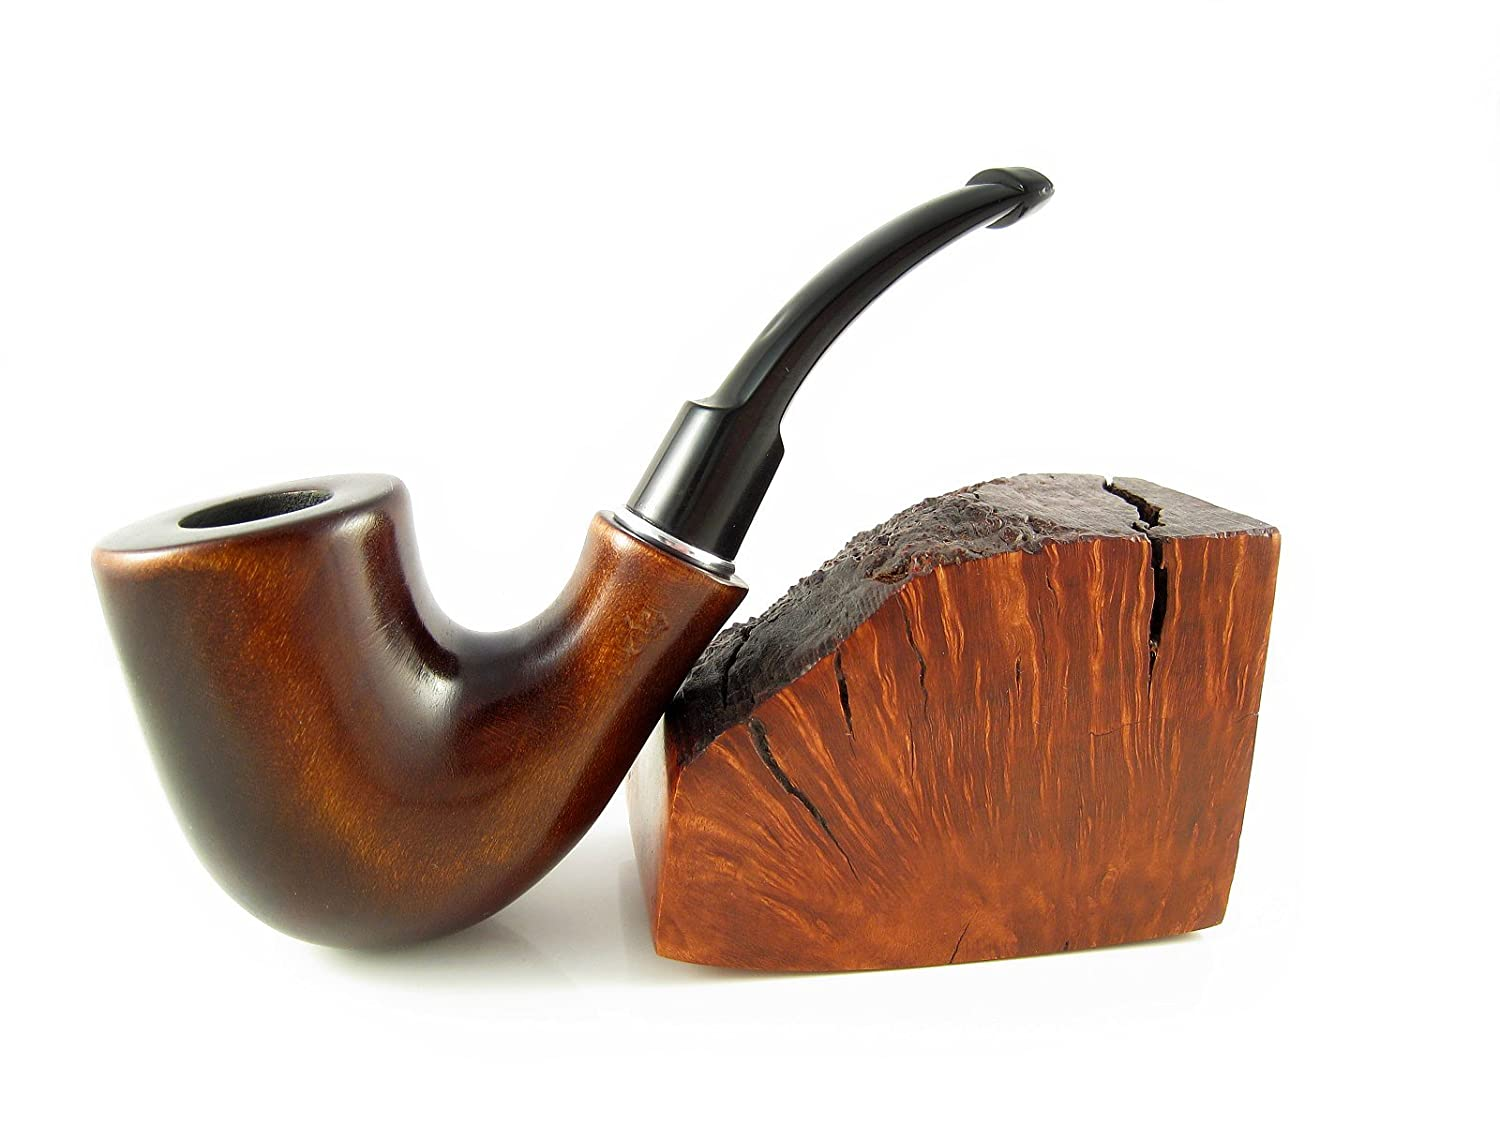 Fashion Pipes Set - Watson Pear Tobacco Smoking Pipe Smooth and Tamper Tools, Designed for Pipe Smokers